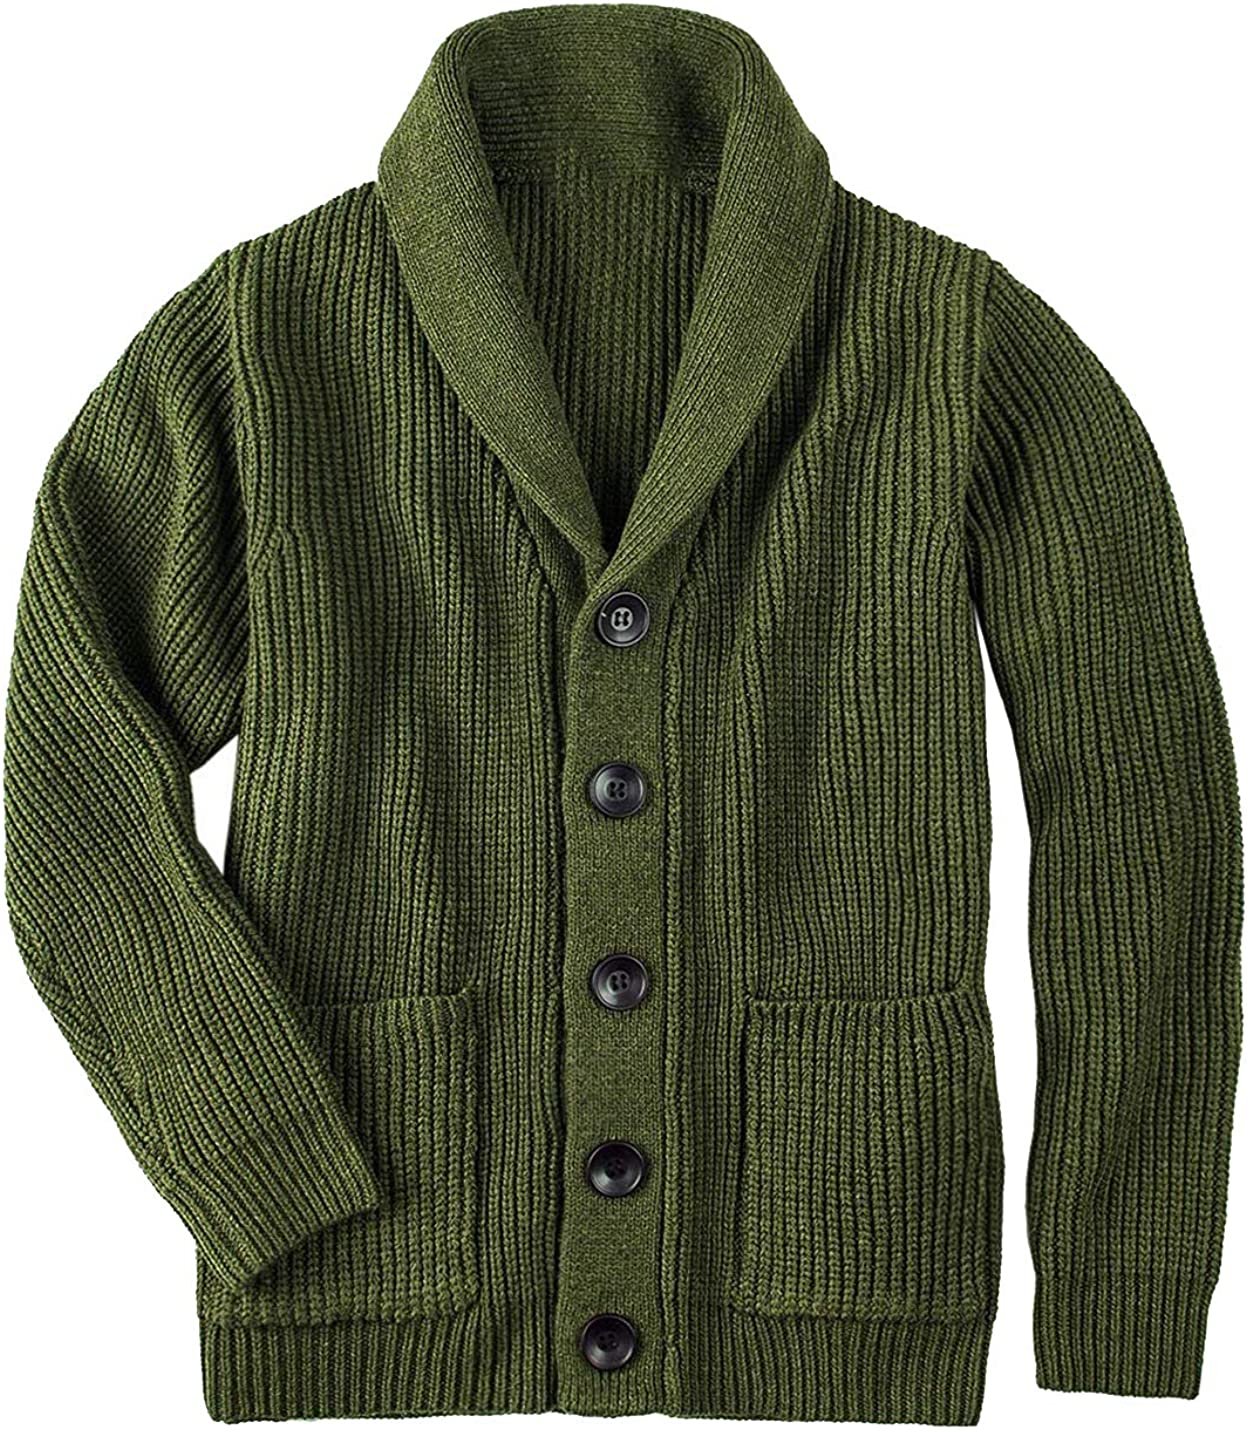 HaoMay Men's Casual Shawl Collar Button Down Knitted Cardigans Sweaters